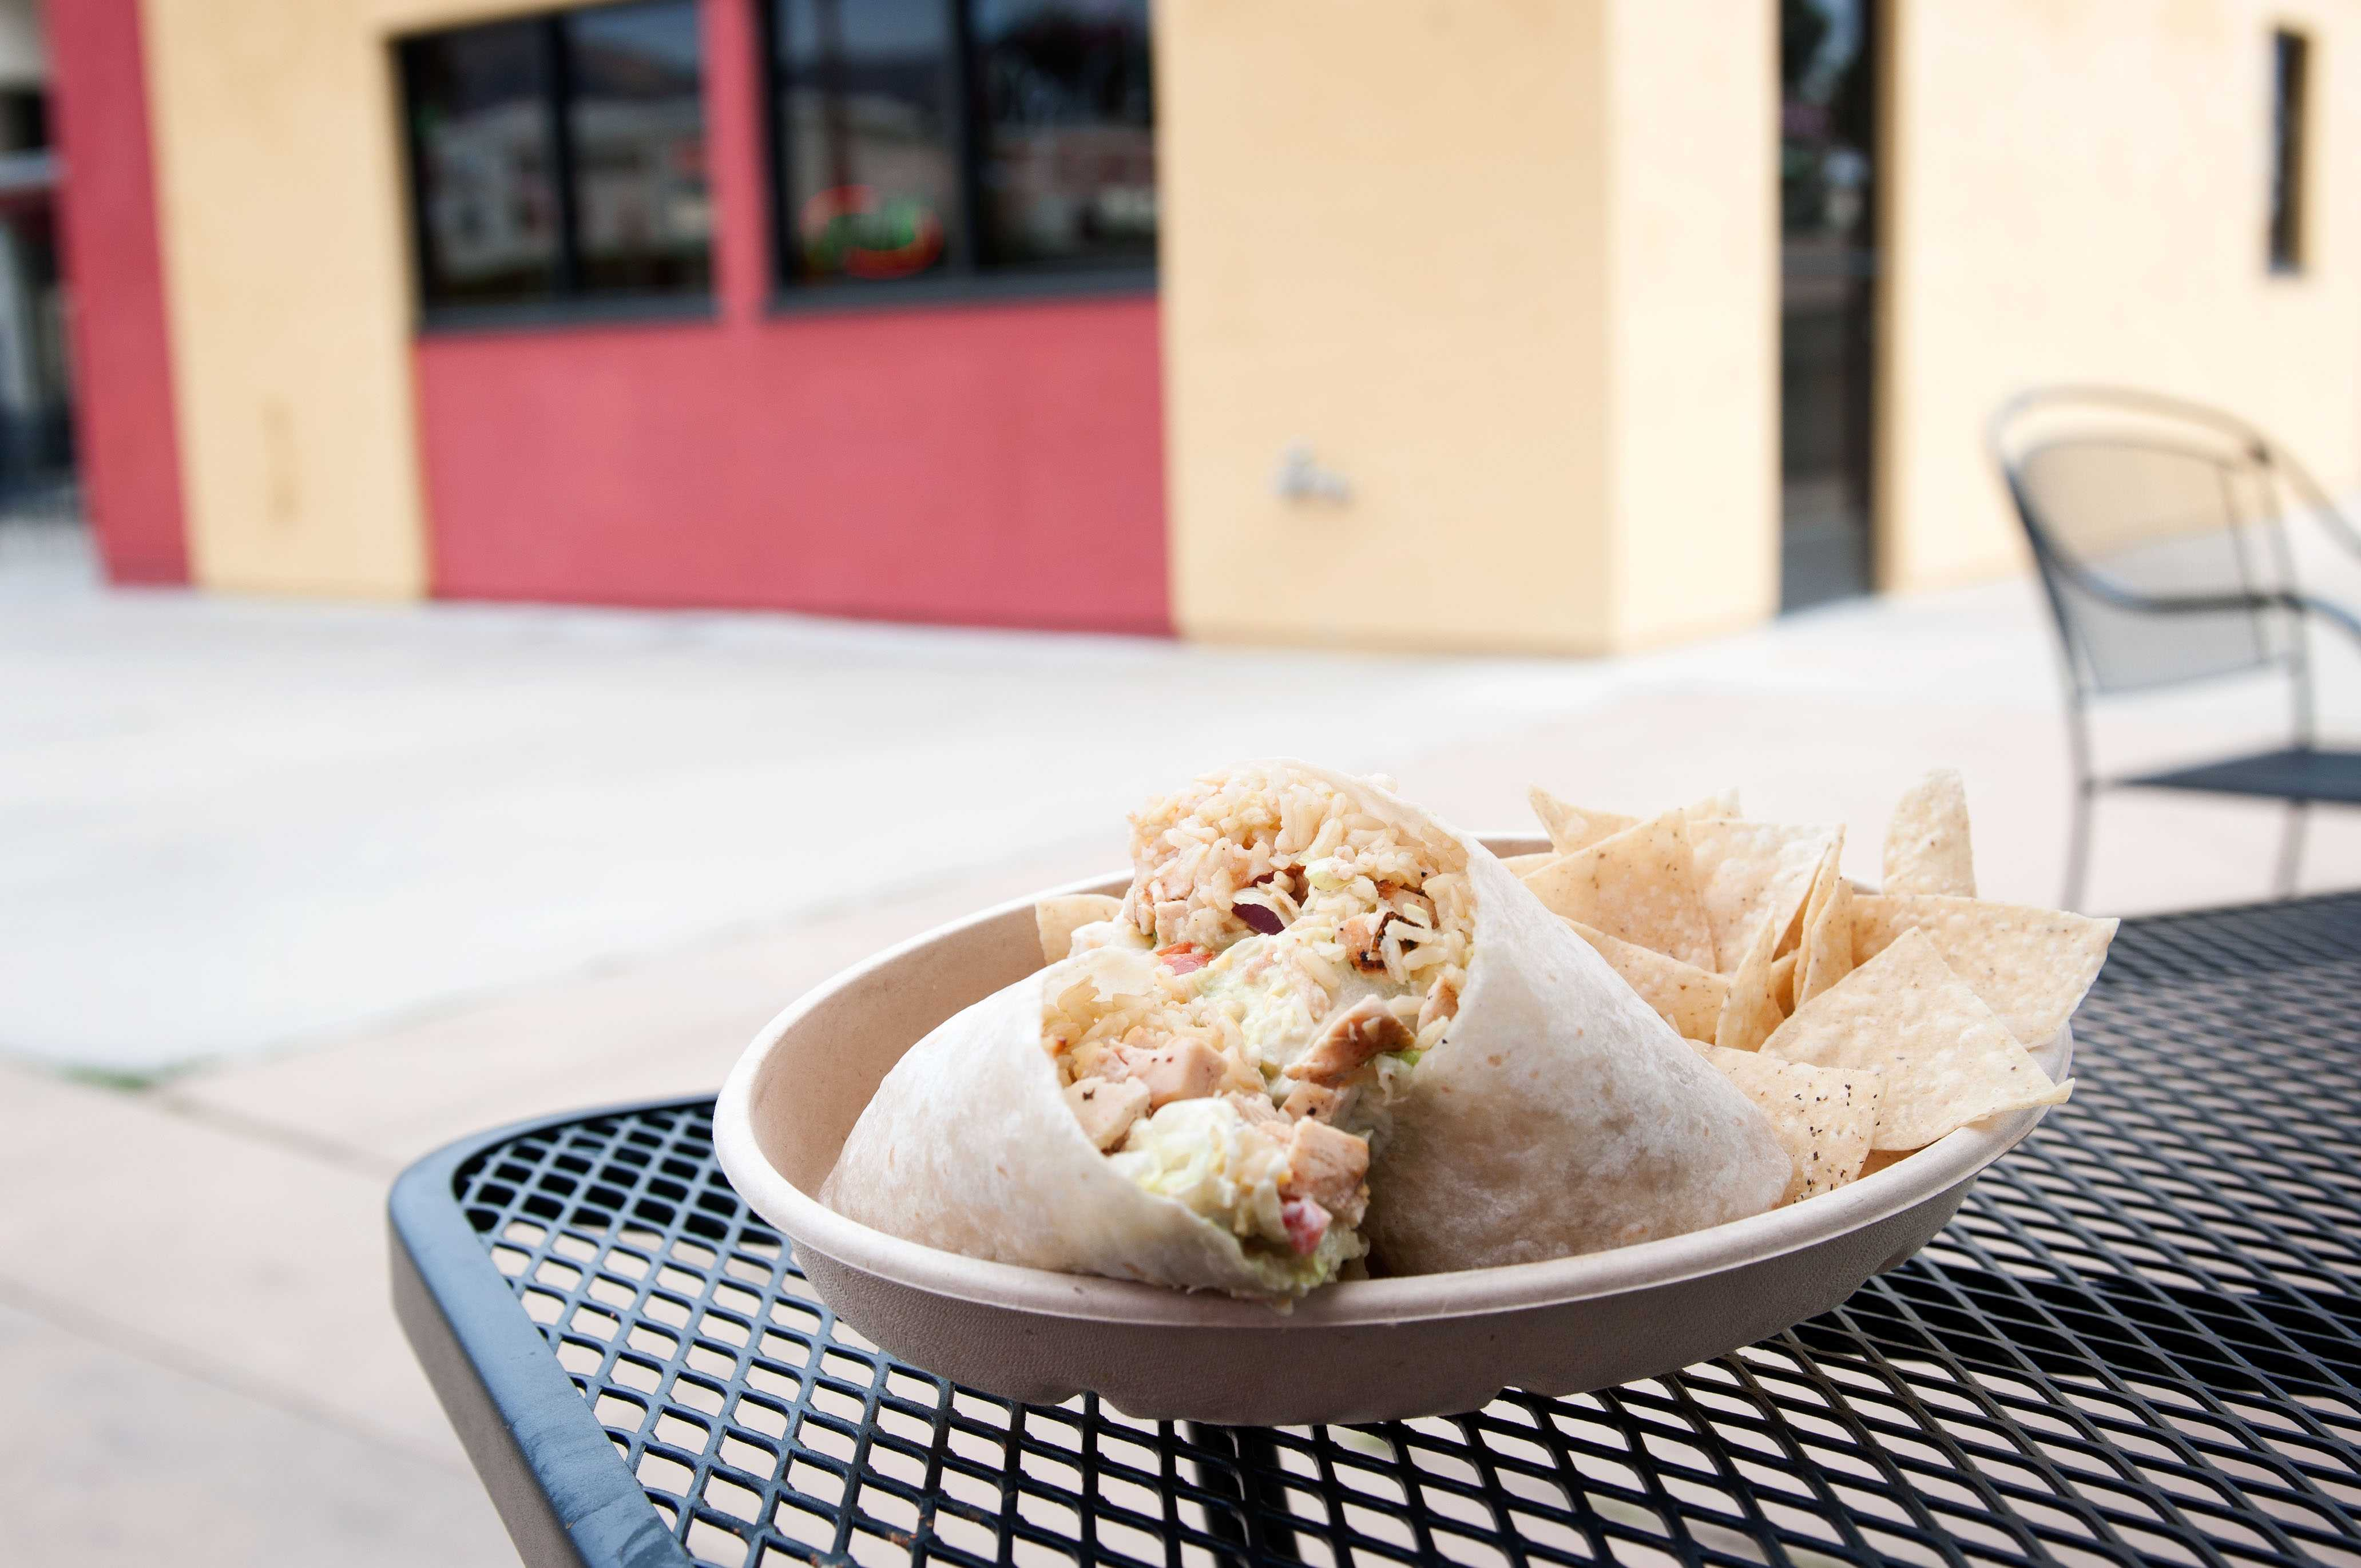 A chicken burrito is one of eight items on the menu at the new Burrito Shack on East Campus. The Burrito Shack opened in January and is City College's newest eatery.